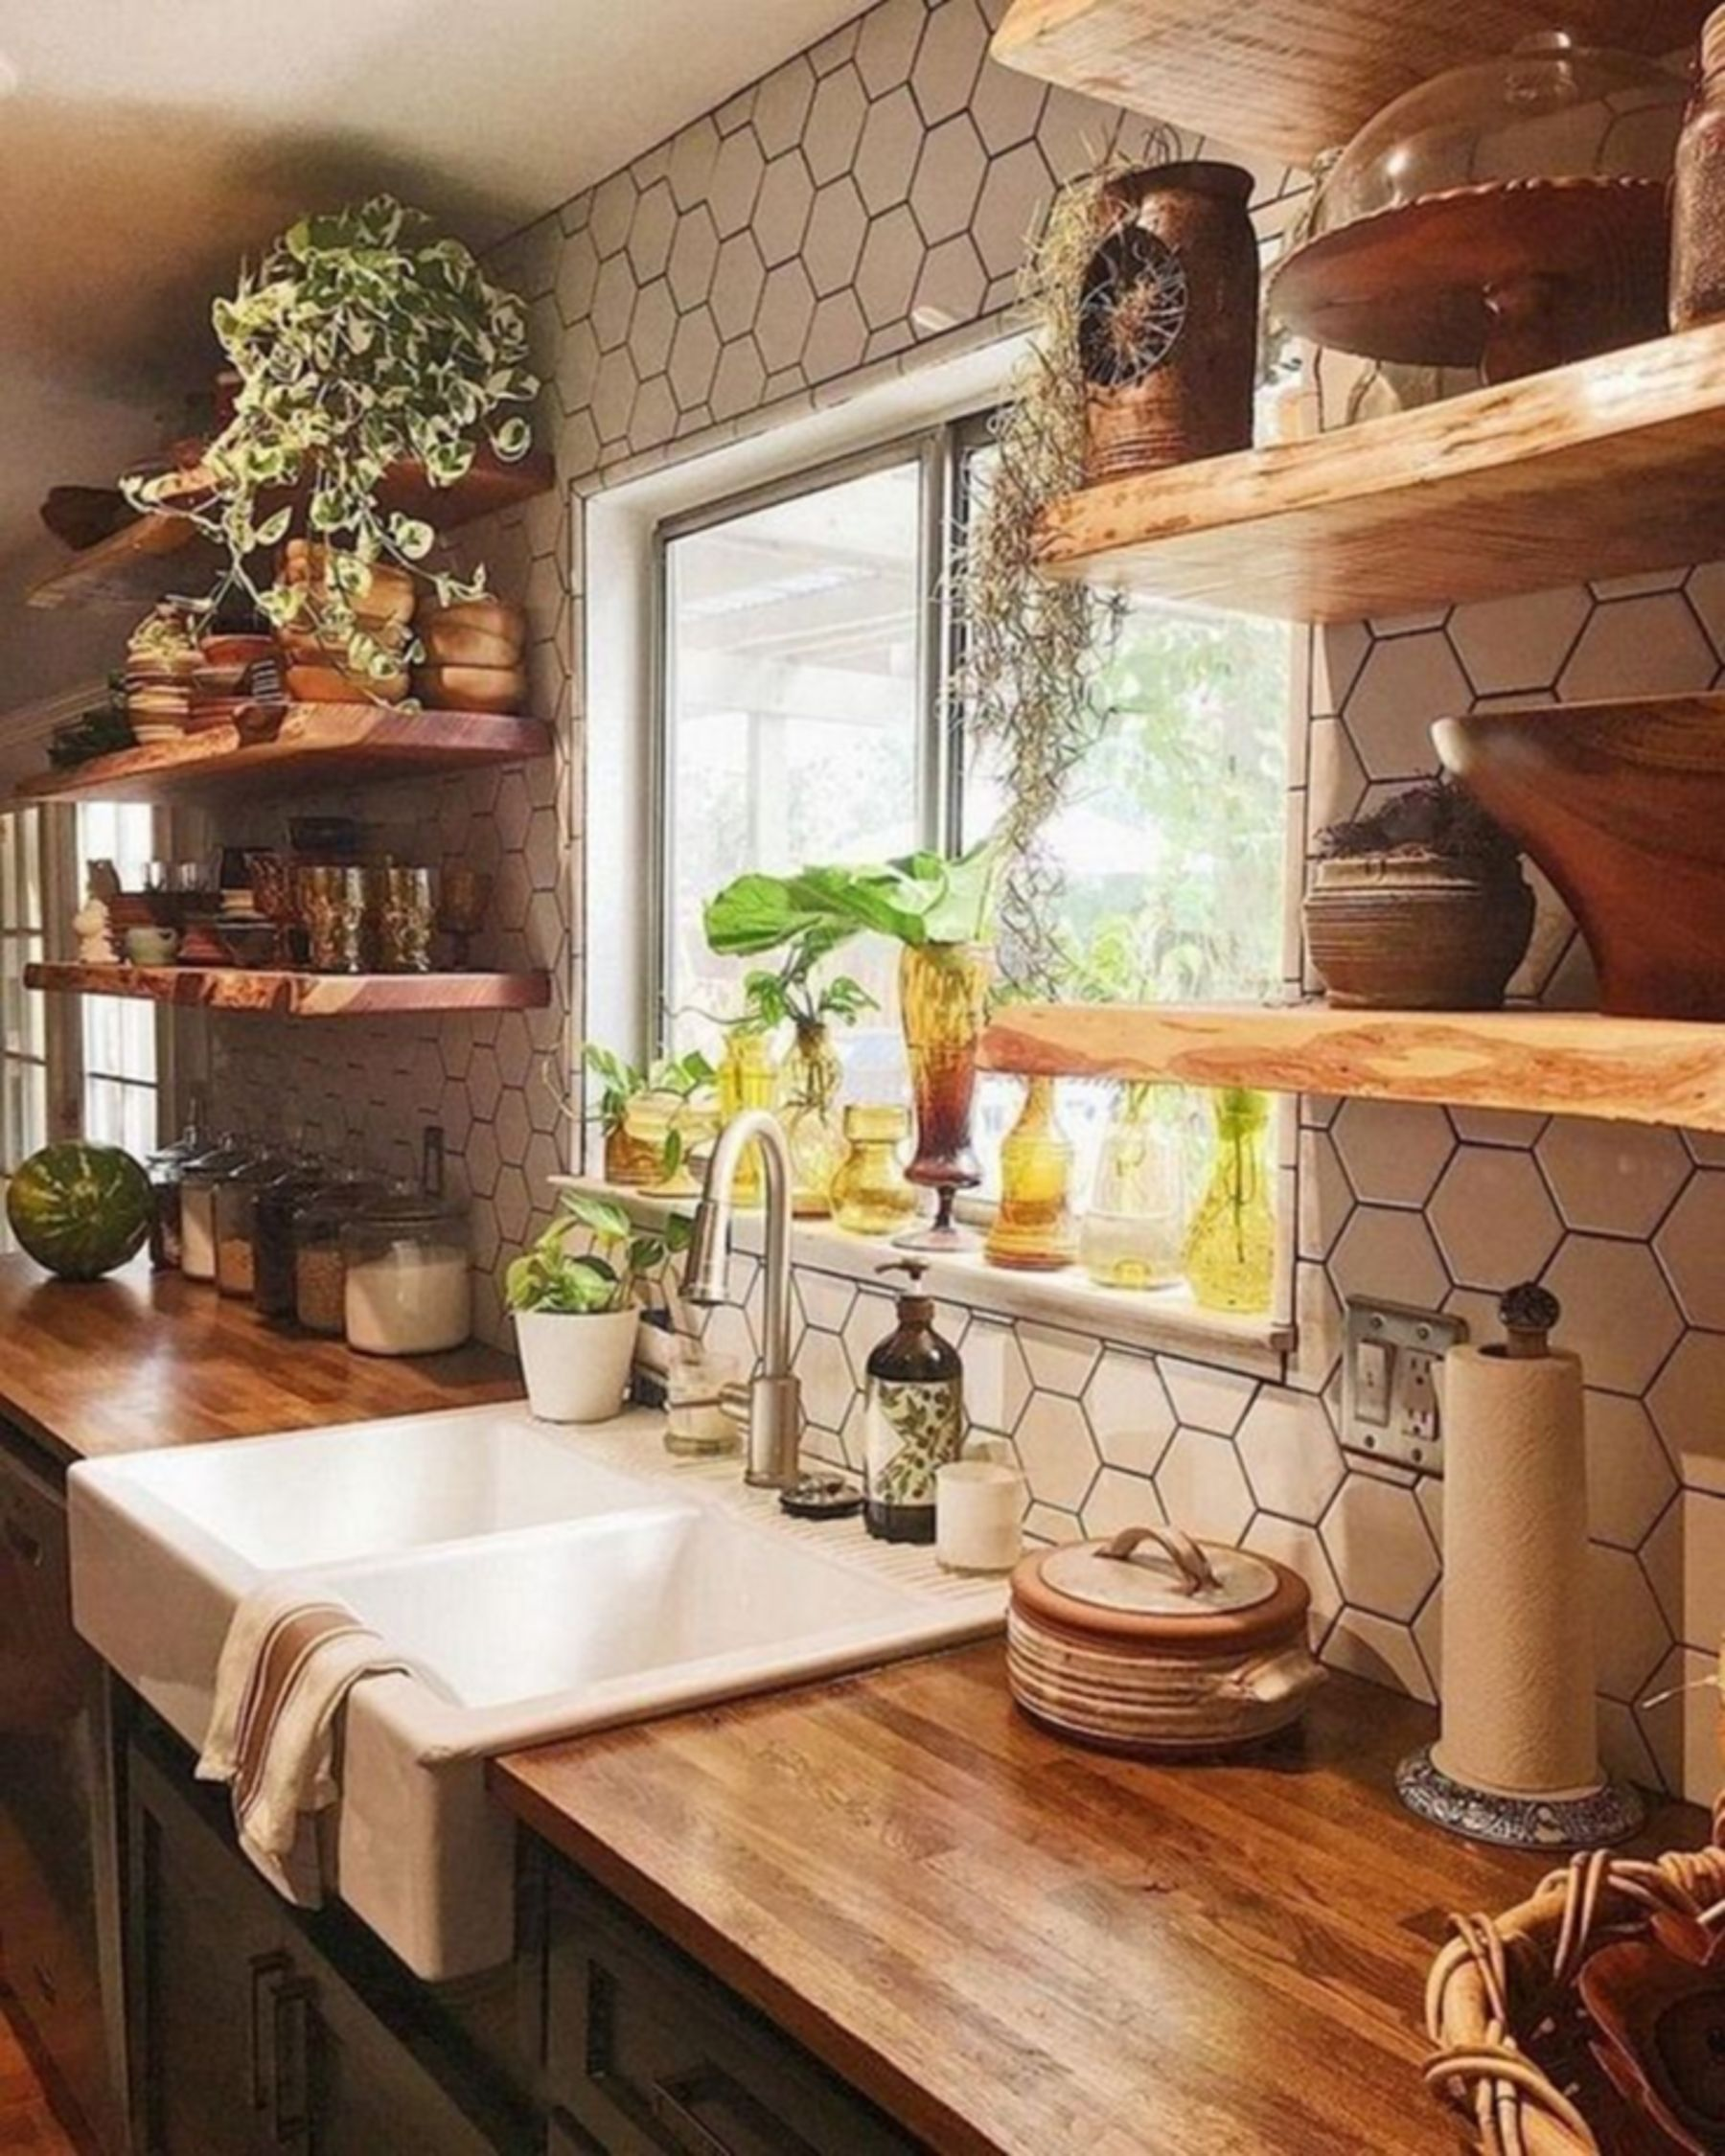 10 Beautiful Summer Kitchen Decoration Ideas To Make Your Cook Happy #kitchen